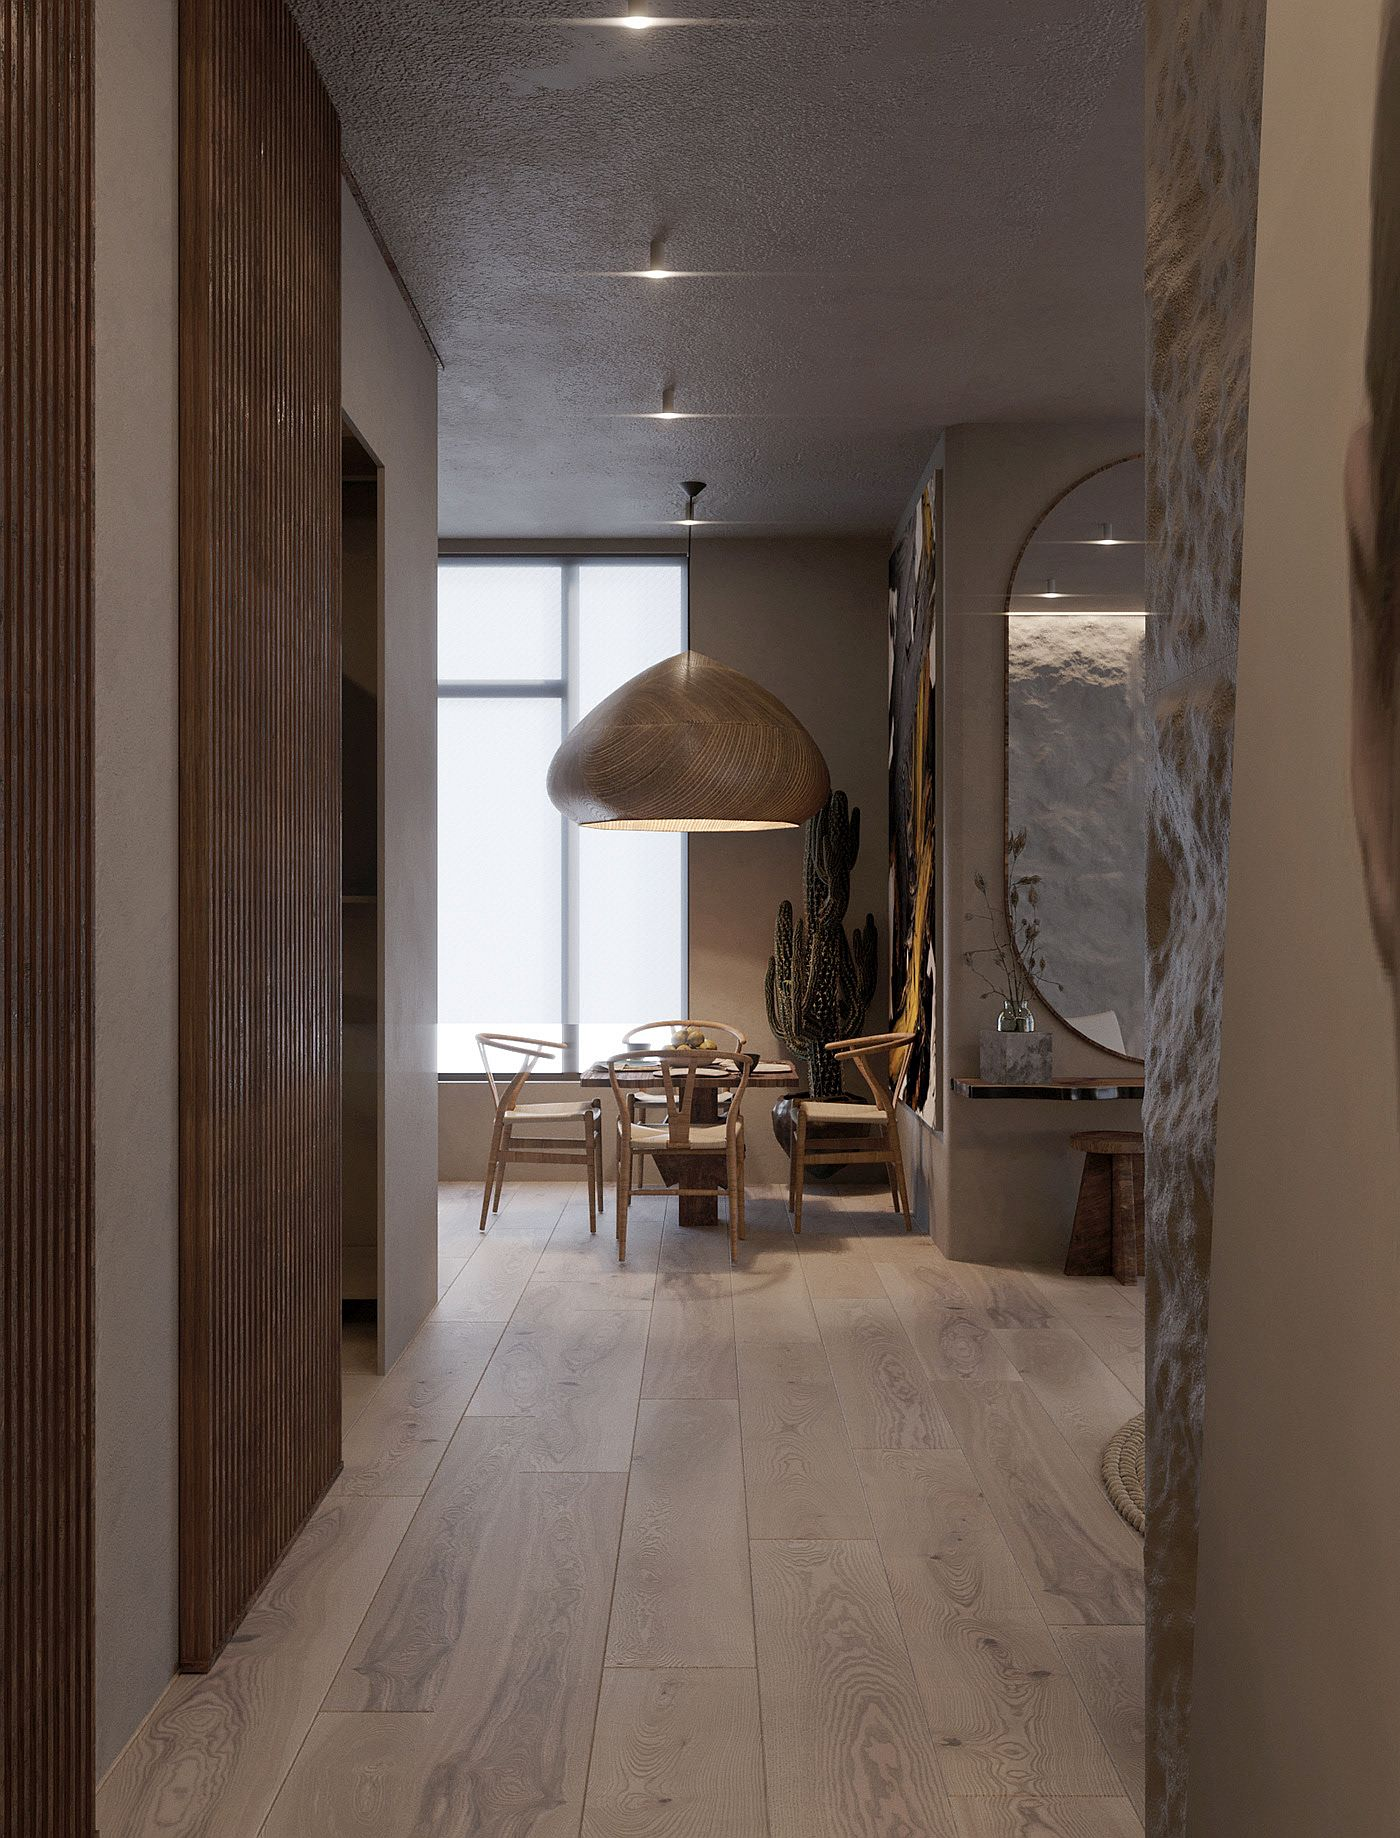 Pendants, flooring and walls sections bring woodsy charm to the interior